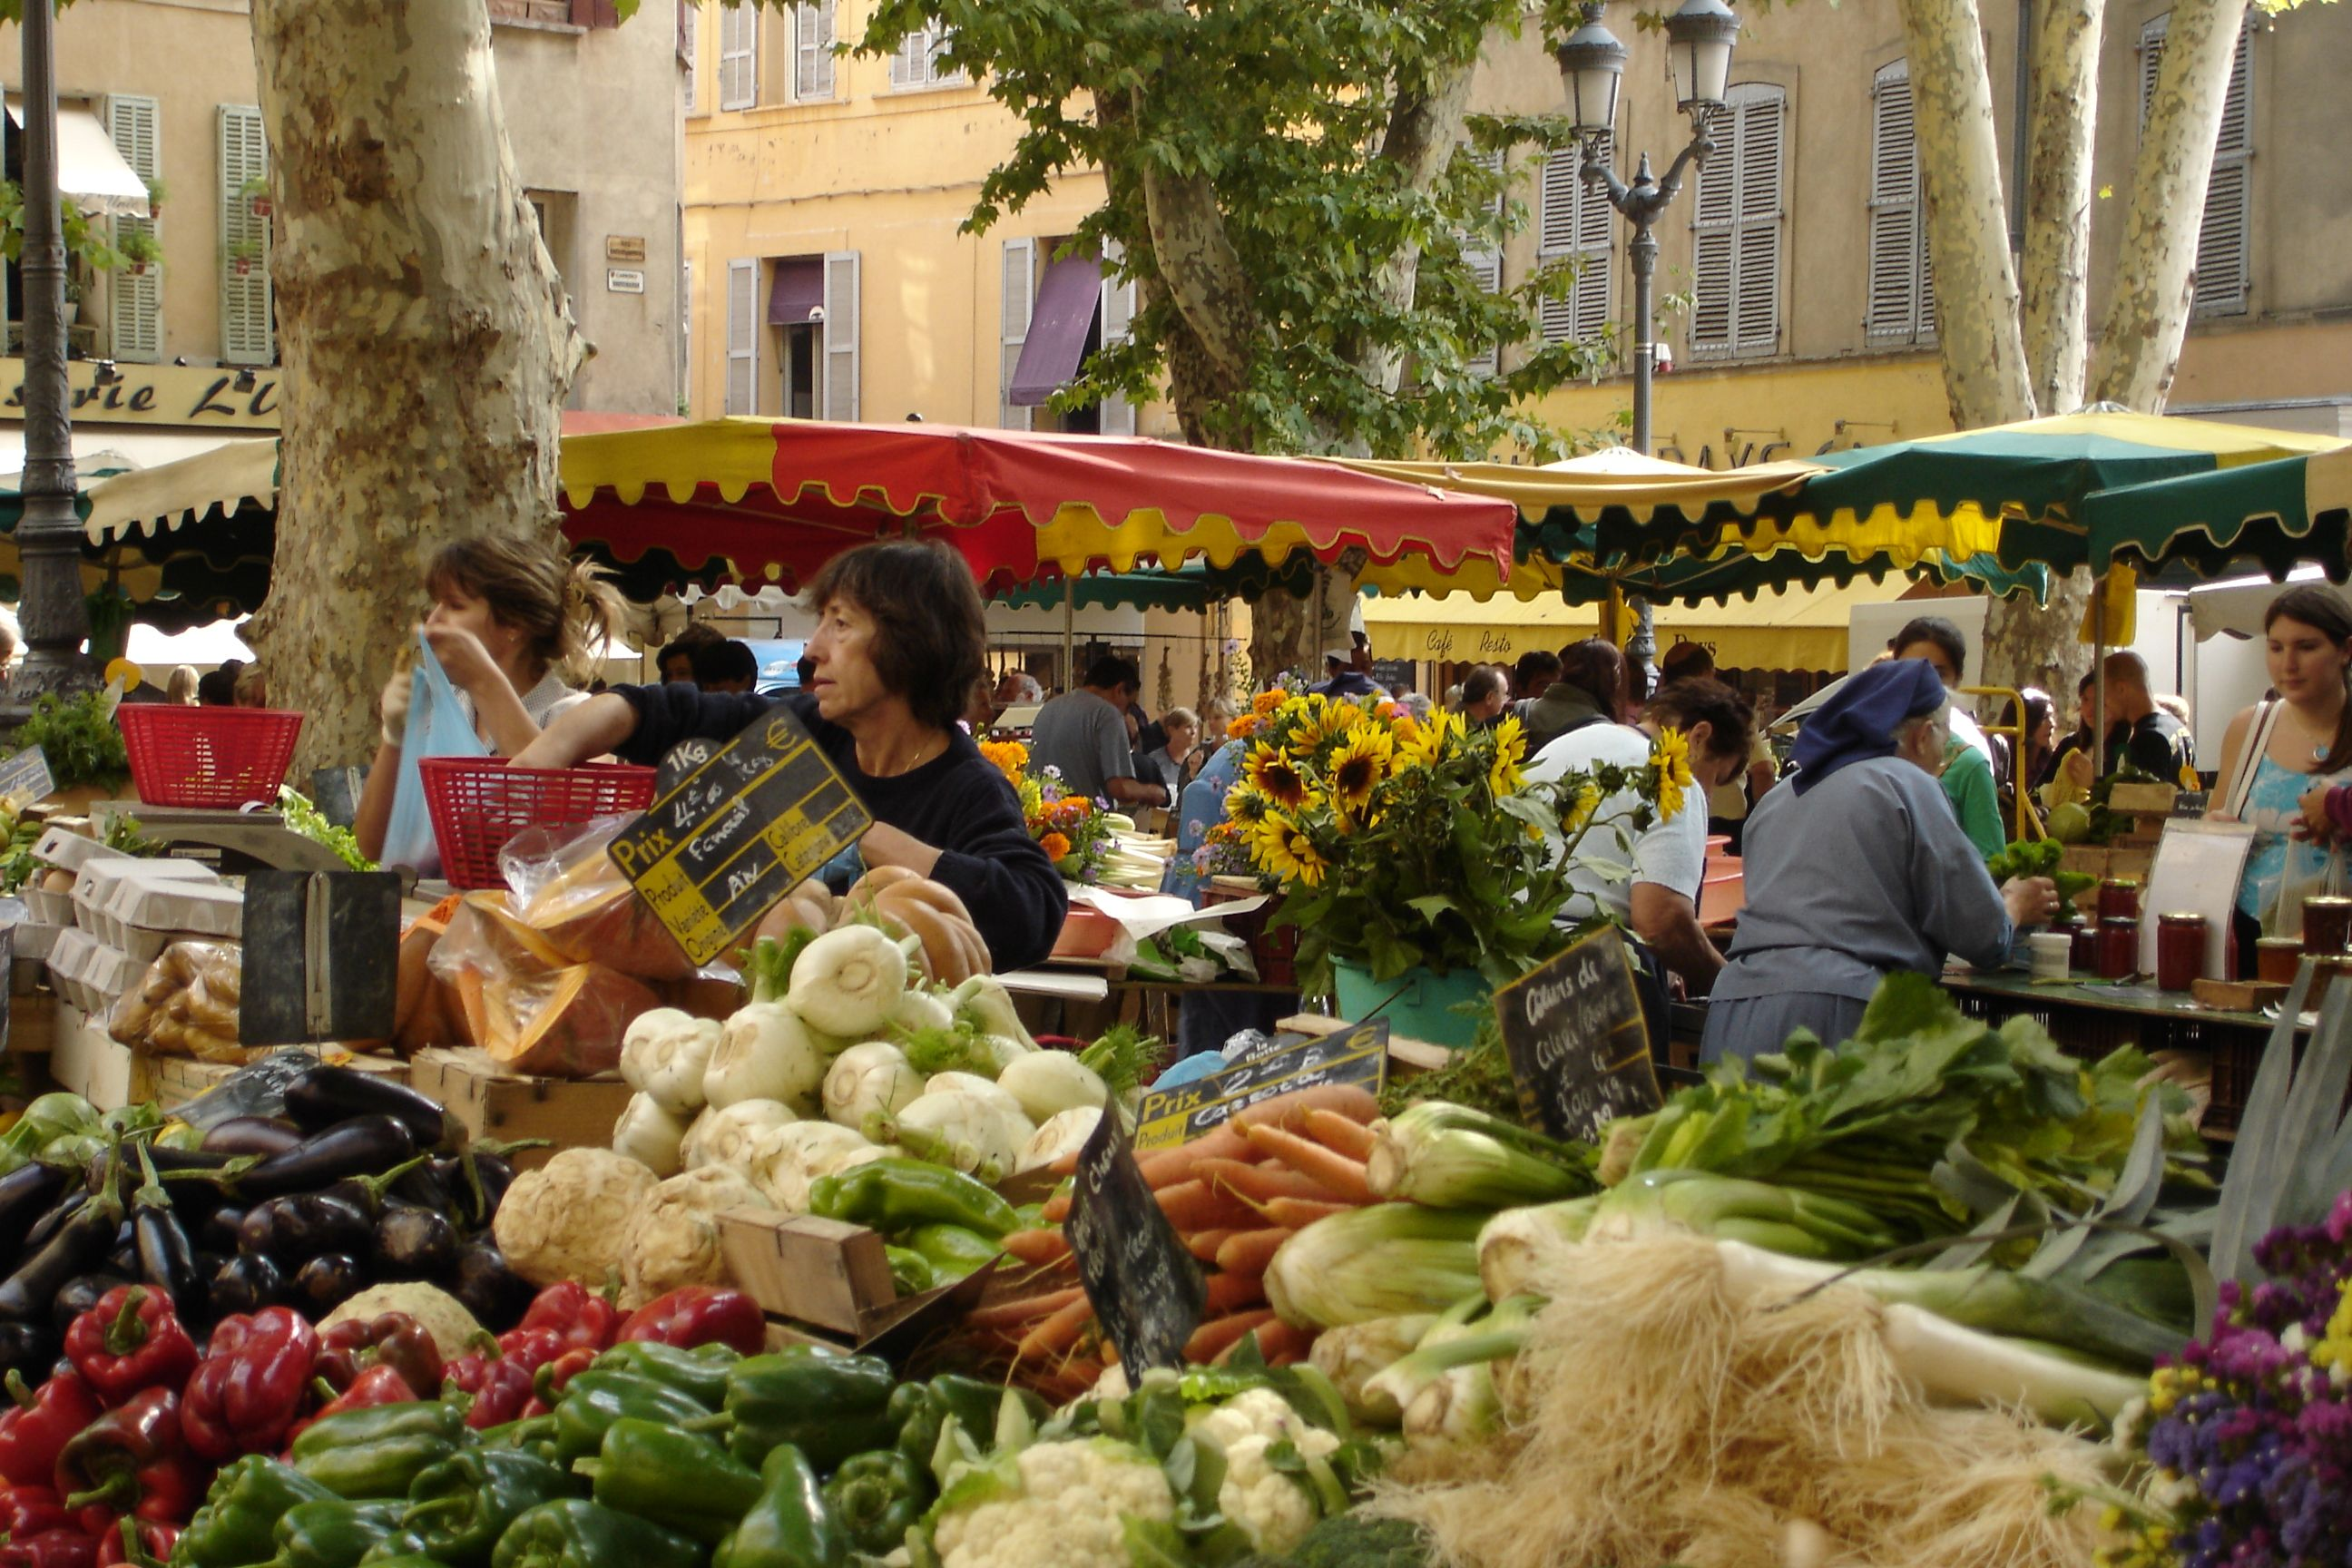 The Daily Vegetable Market In Place Richelme In Aix En Provence